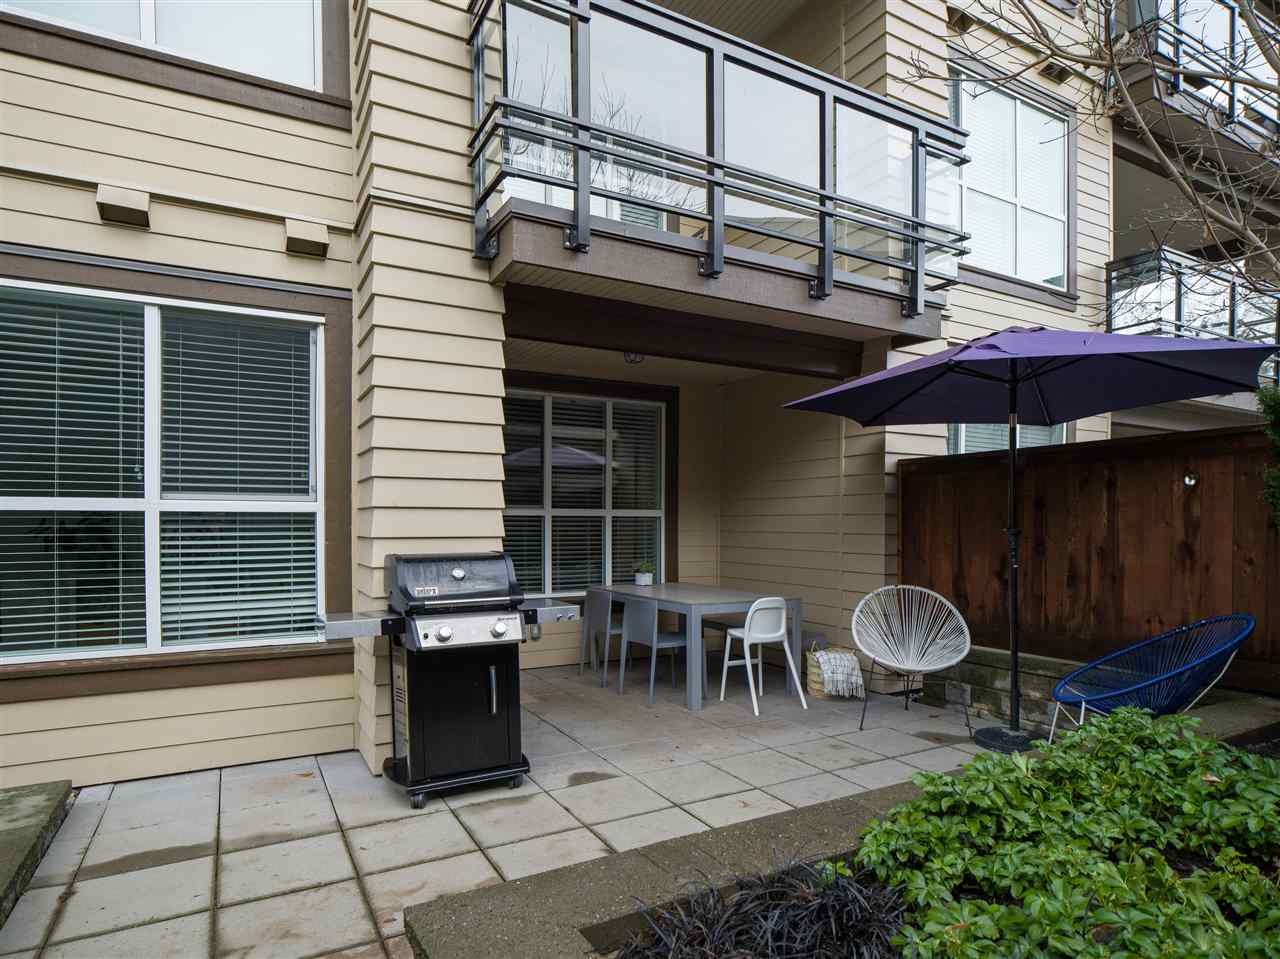 101 3205 MOUNTAIN HIGHWAY - Lynn Valley Apartment/Condo for sale, 2 Bedrooms (R2527517) - #23